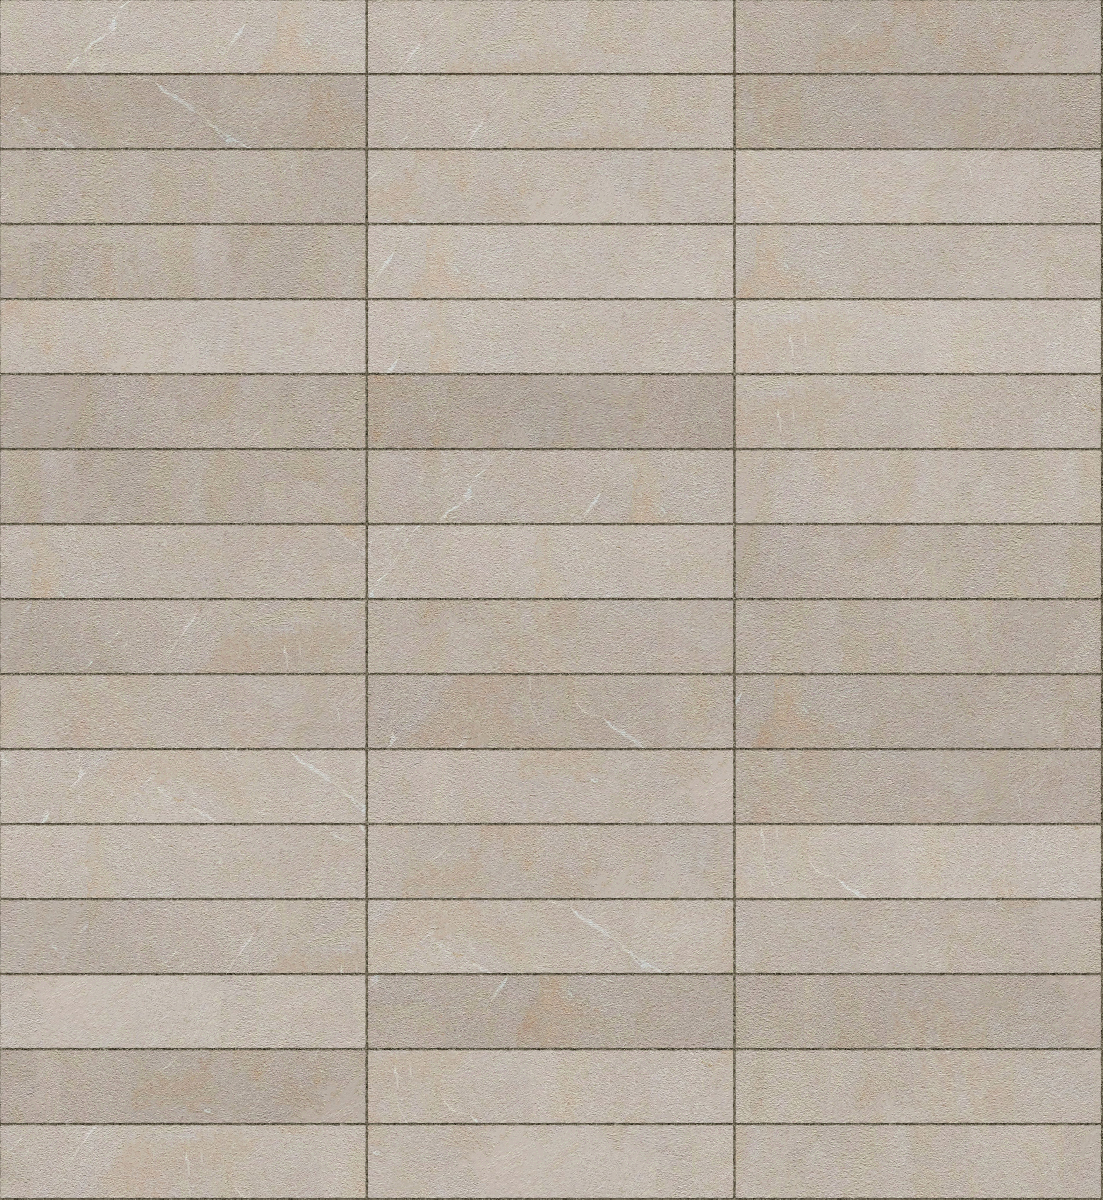 A seamless stone texture with limestone blocks arranged in a stack pattern